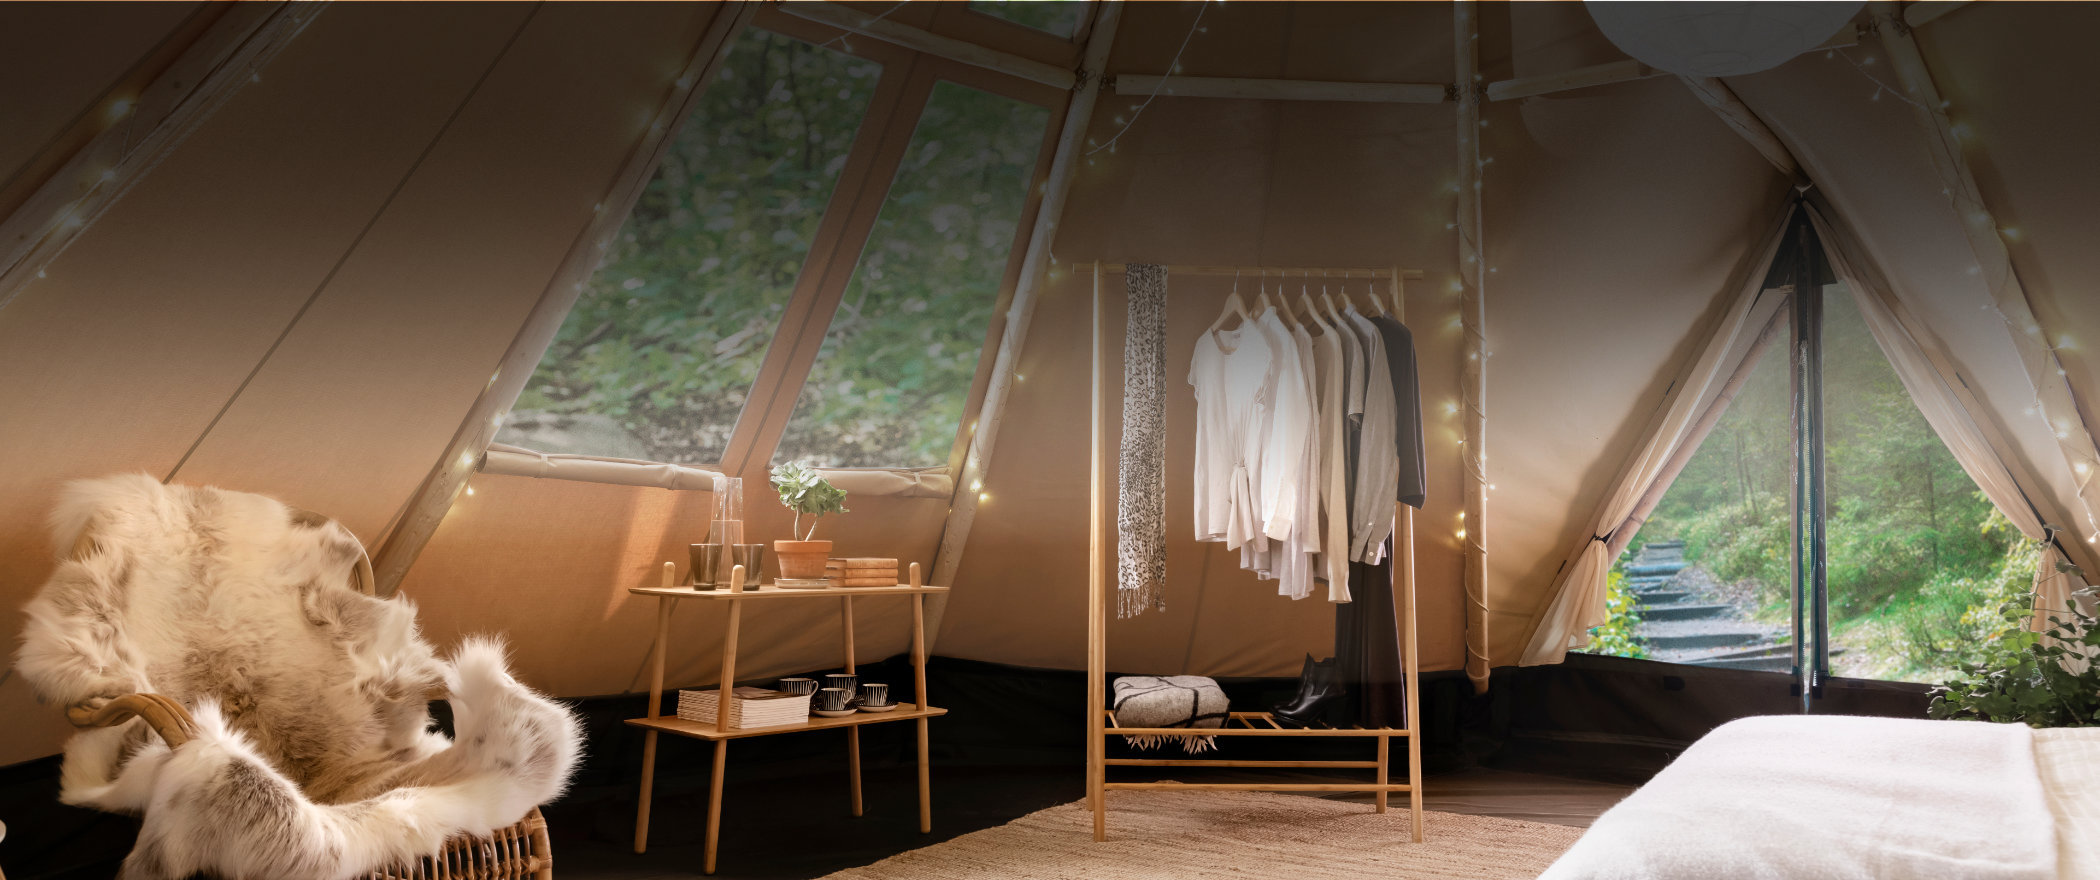 Luxury glamping tents with spacious room to furnish for both elegance and comfort